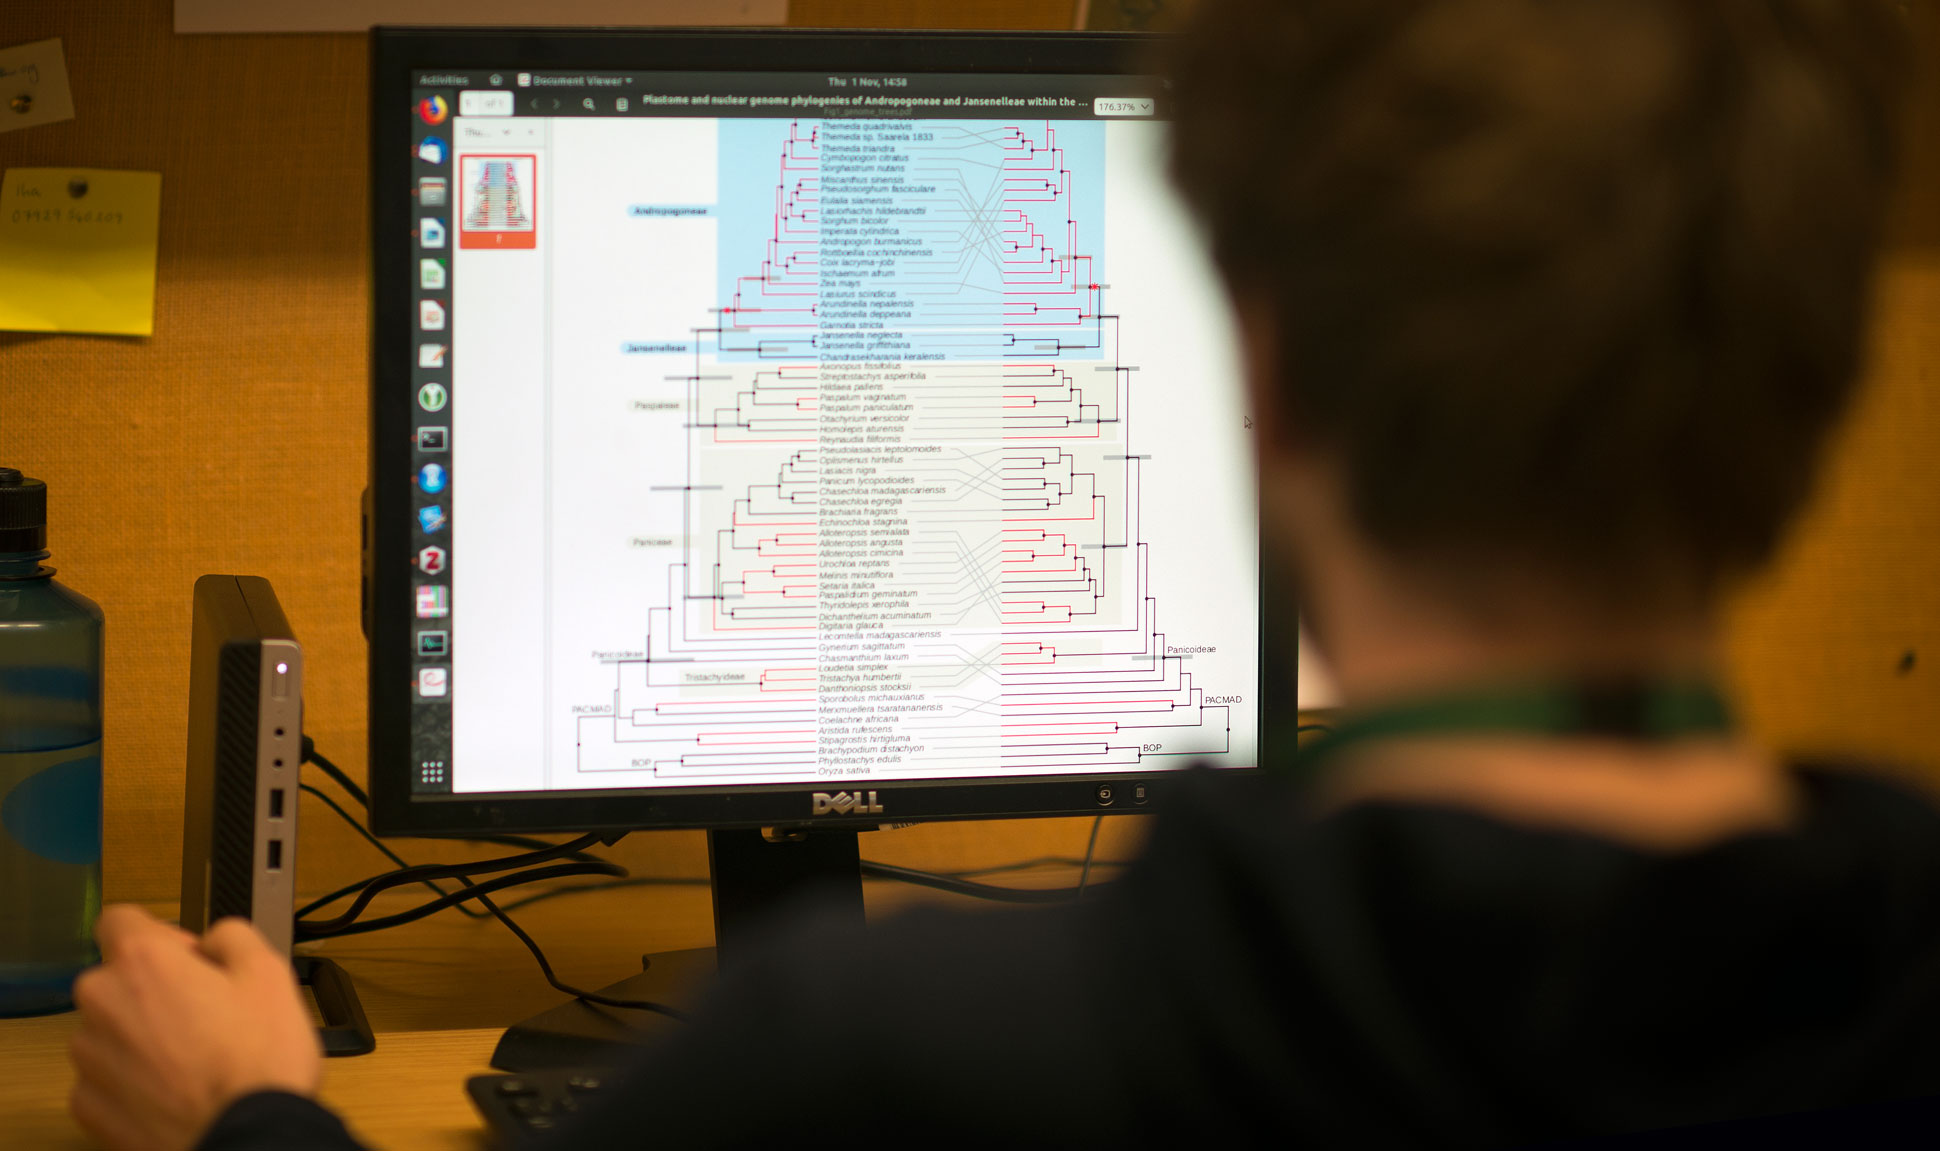 Researcher sat in front of computer screen with phylogenetic tree